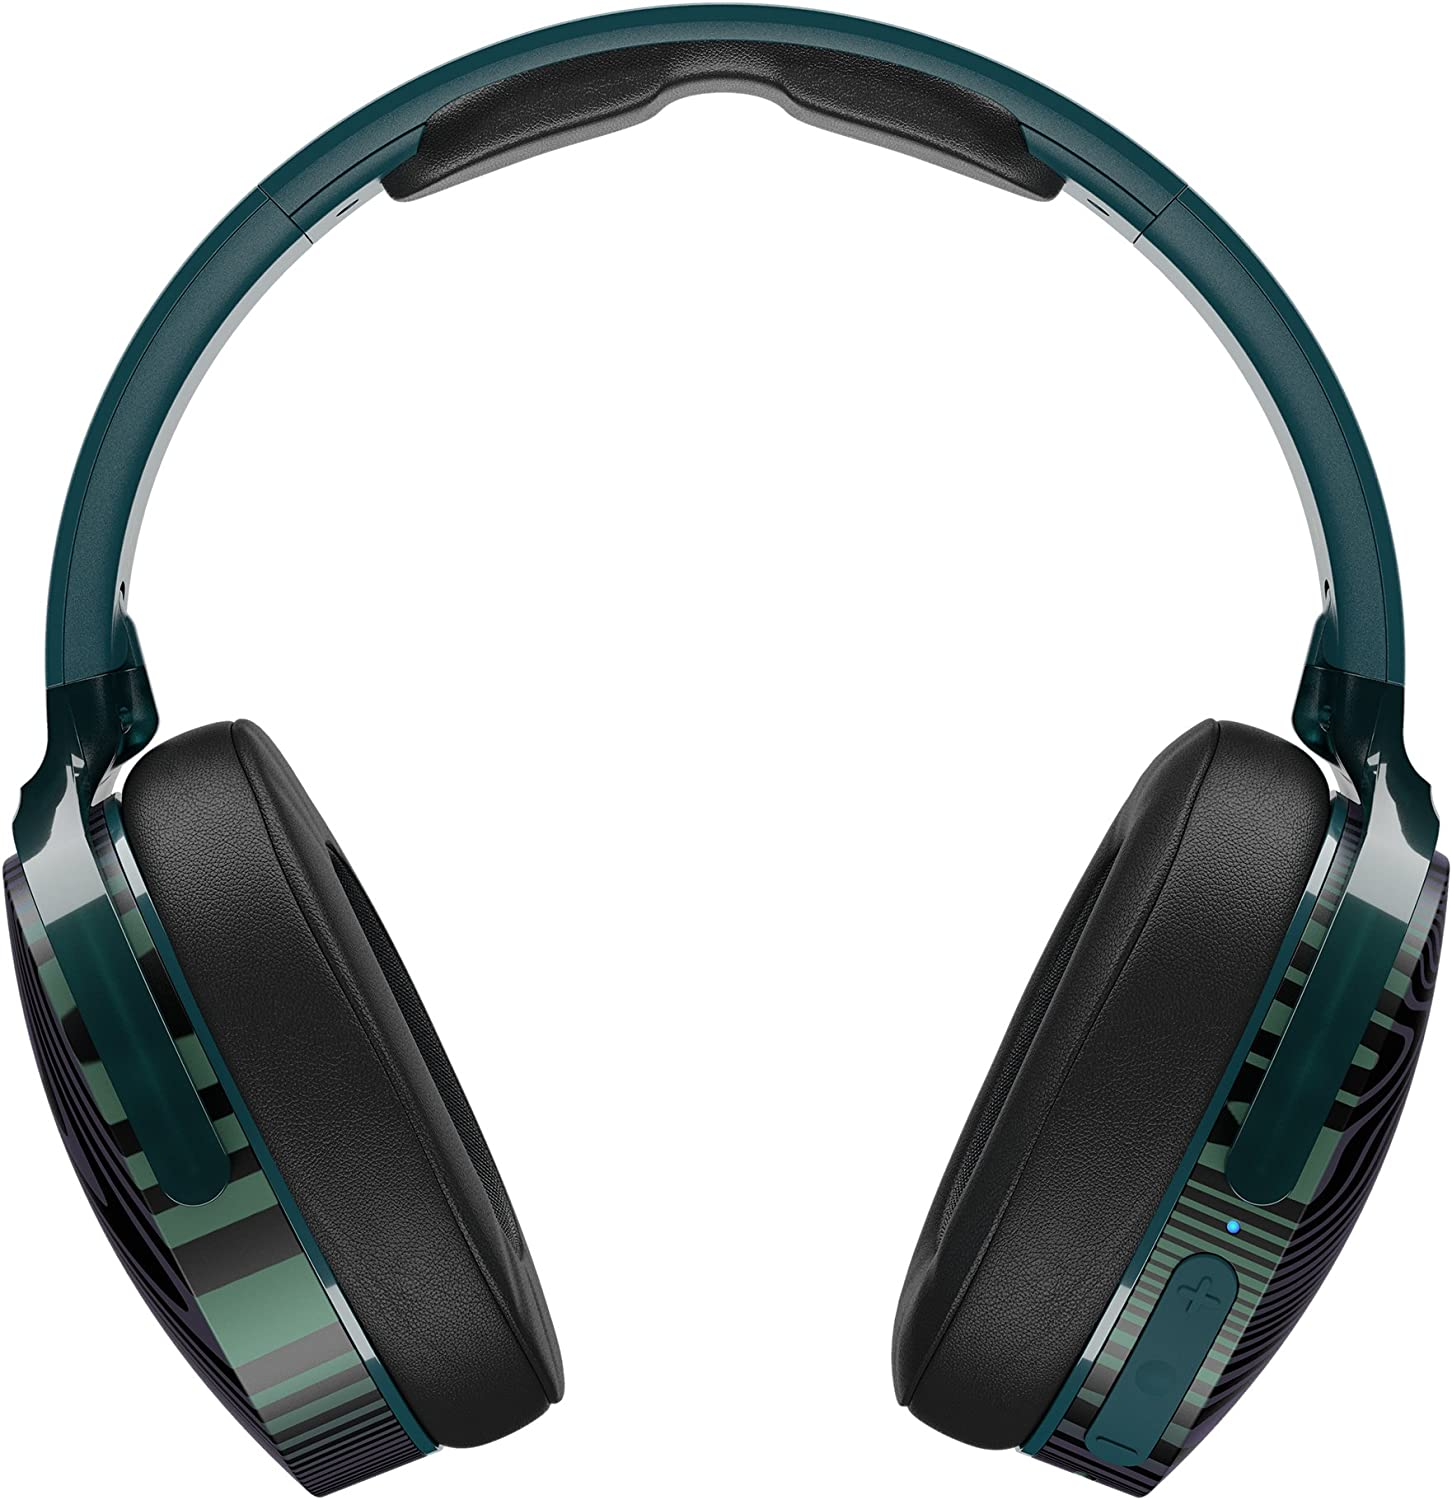 B07CVHCRS3 Skullcandy Hesh 3 Wireless Over-Ear Headphone - Psycho Tropical 81nKNbvoJ6L